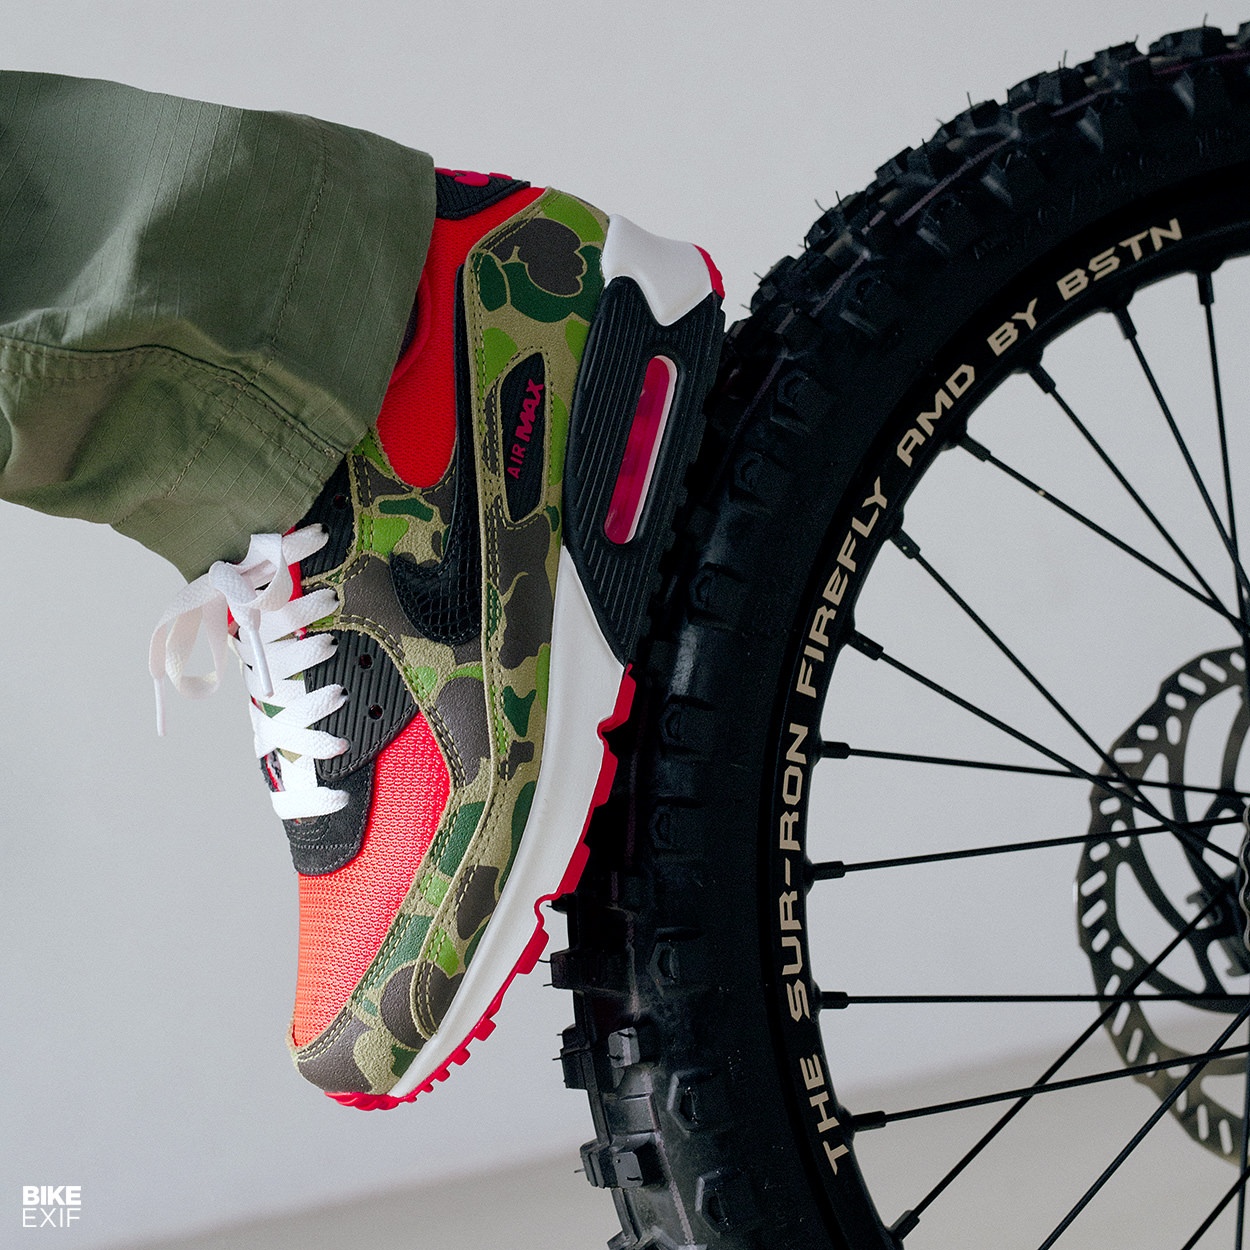 Sur-Ron bike: A custom Firefly built to celebrate Nike Air Max Day